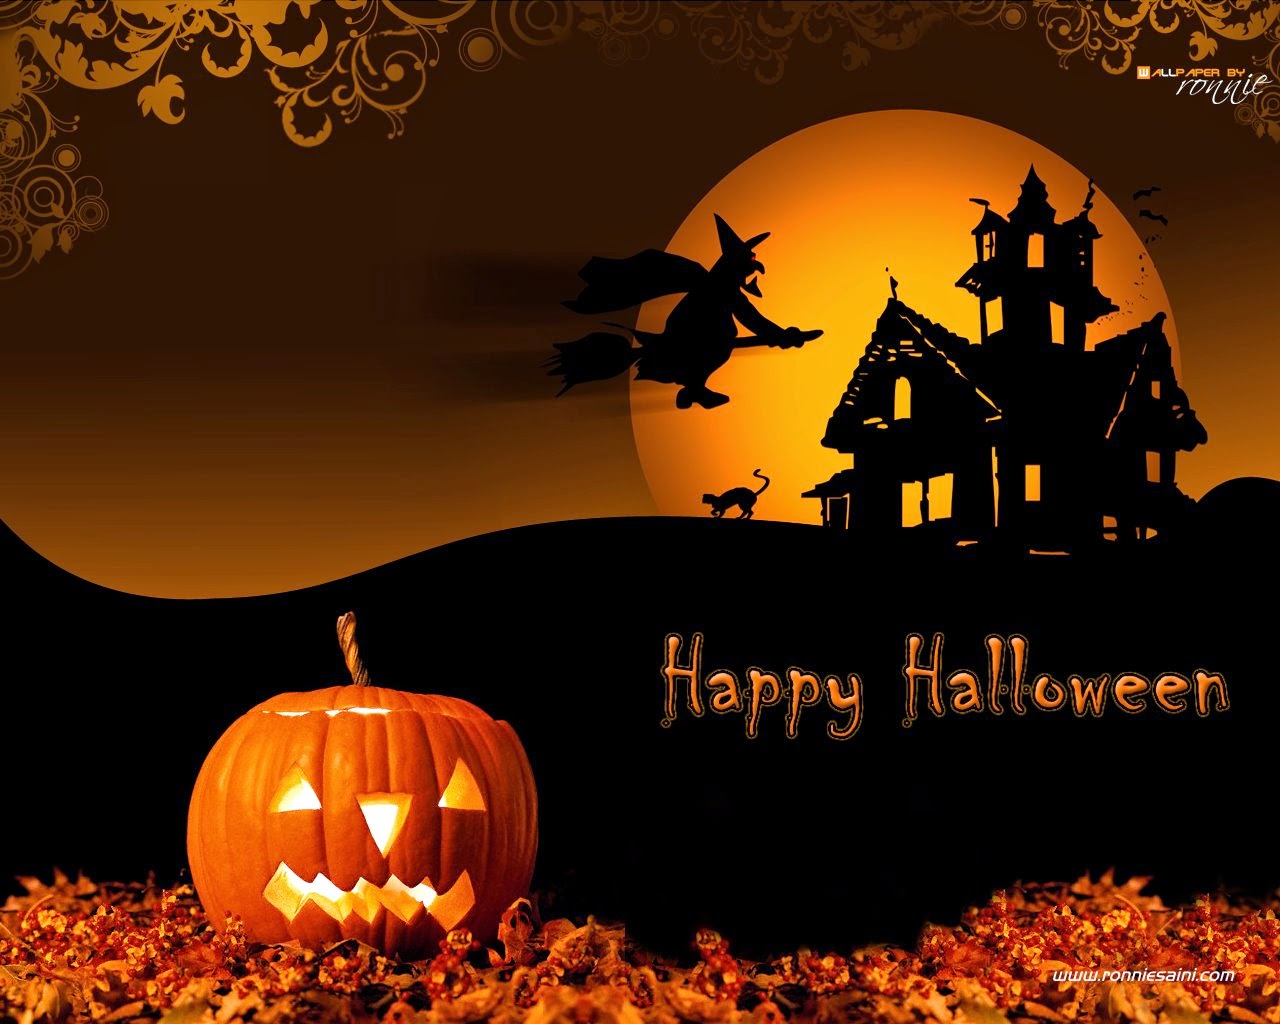 Halloween Day 2014 Wishes Wallpapers